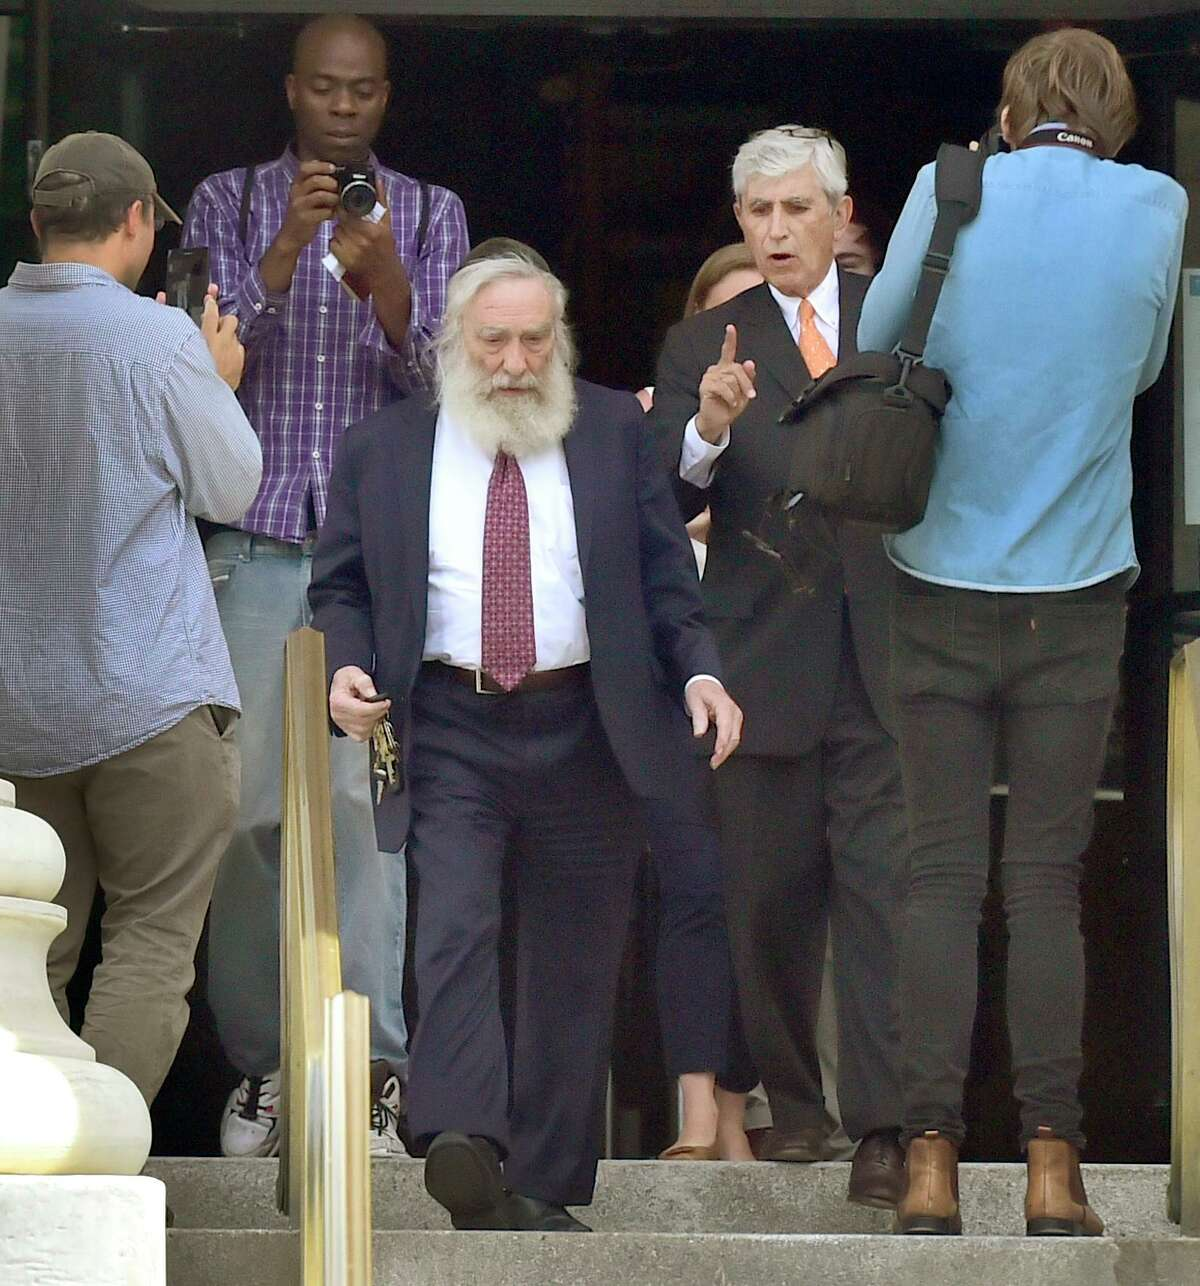 Rabbi Daniel Greer, 77, of New Haven, third from left, leaves New Haven Superior Court with his attorney William Dow III, of New Haven, after he was arraigned on sexual assault charges in 2017.